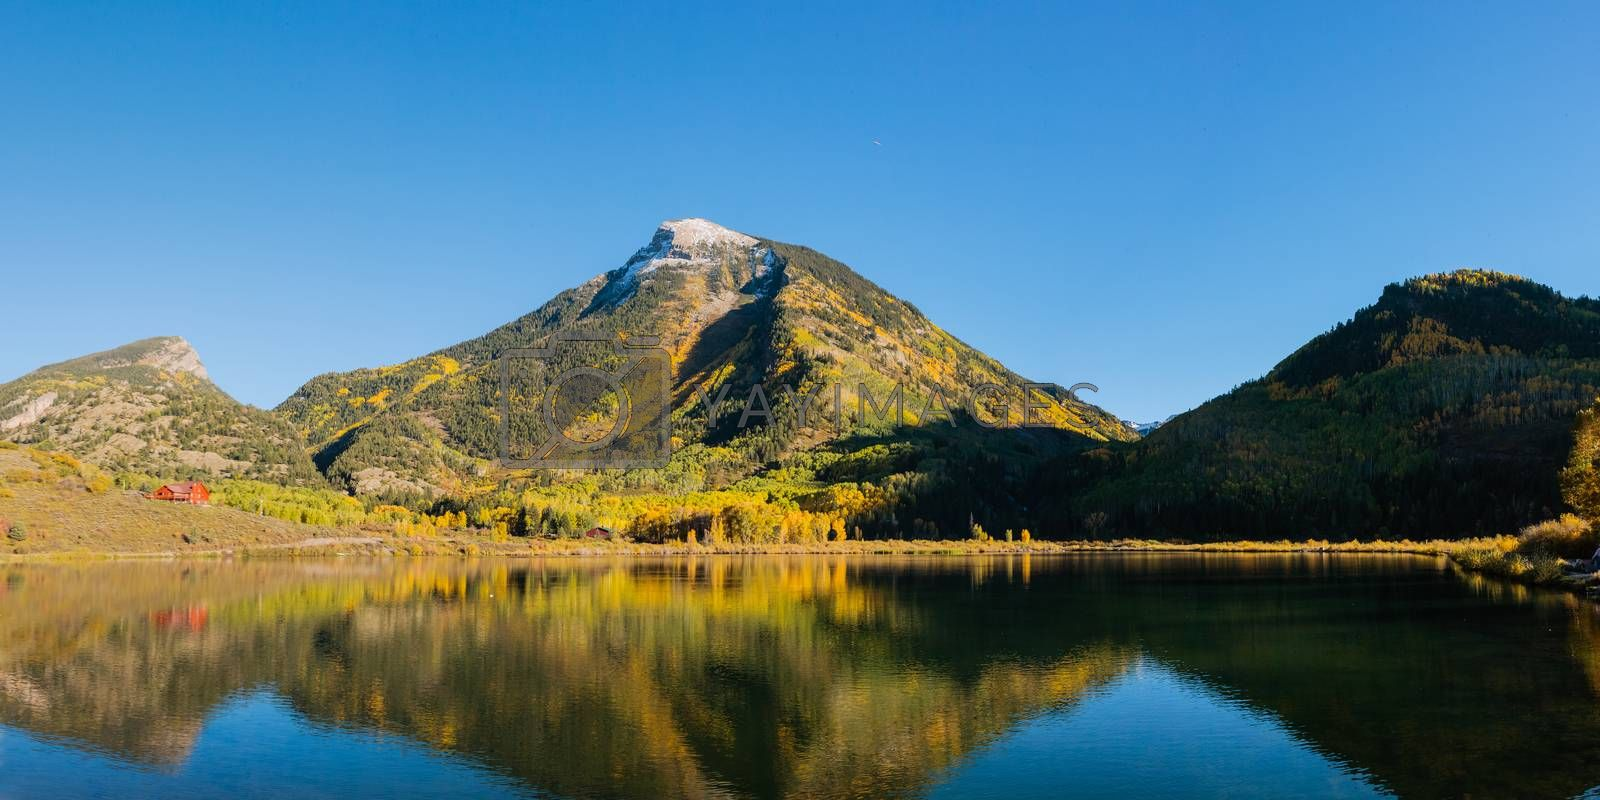 Colorful Colorado Scenic Landscape Beauty by Gary Gray